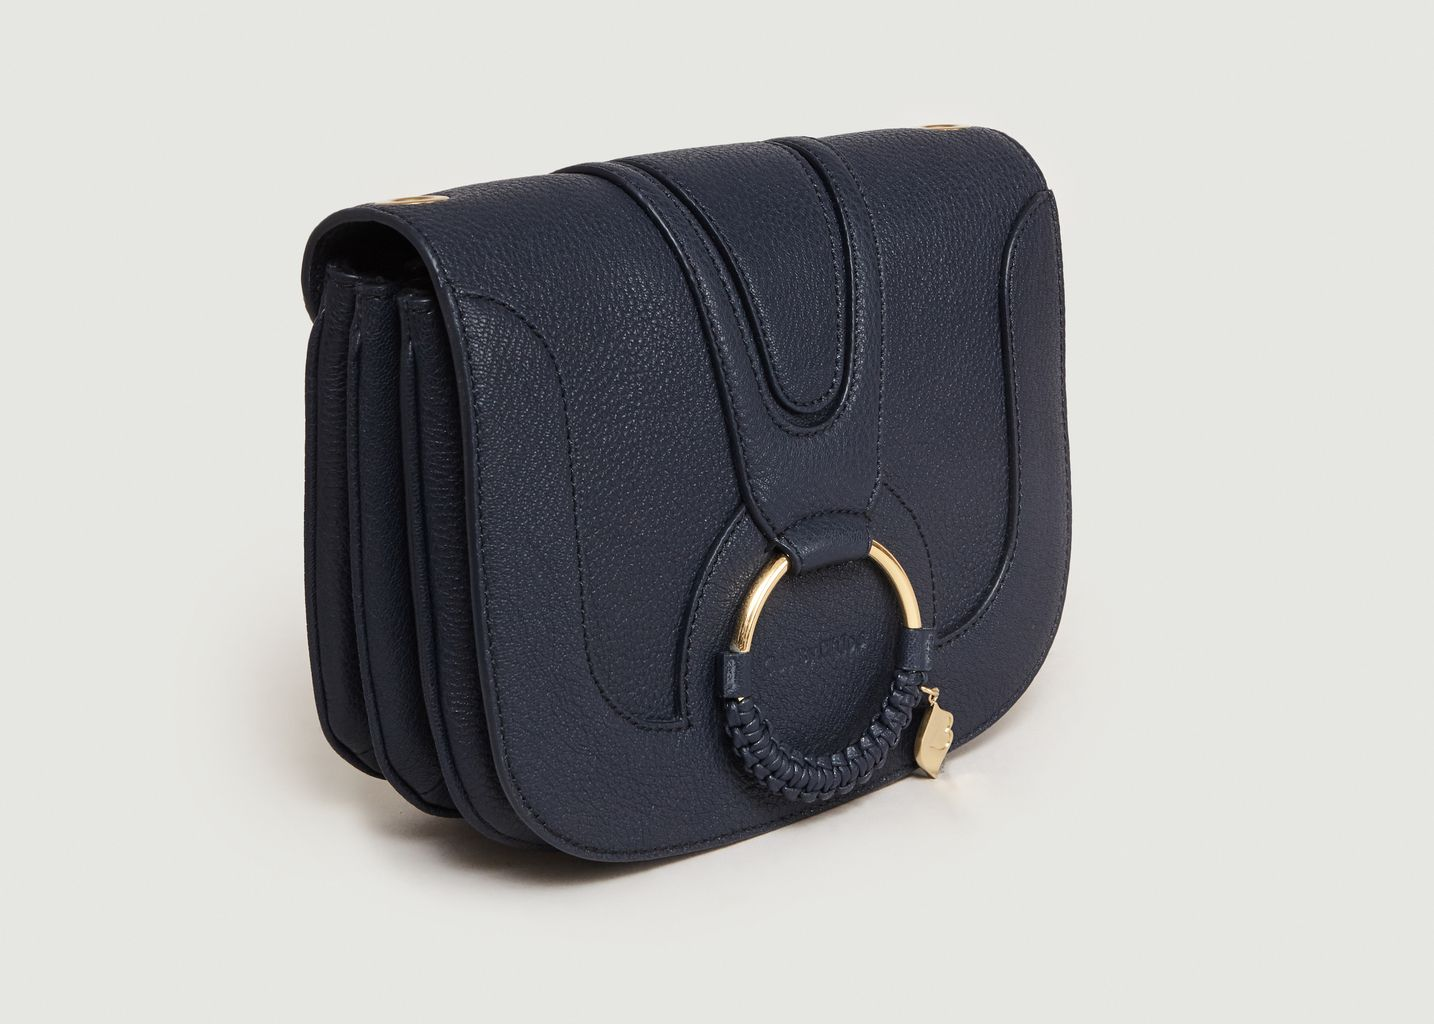 Sac Hana Small Personnalisable - See by Chloé